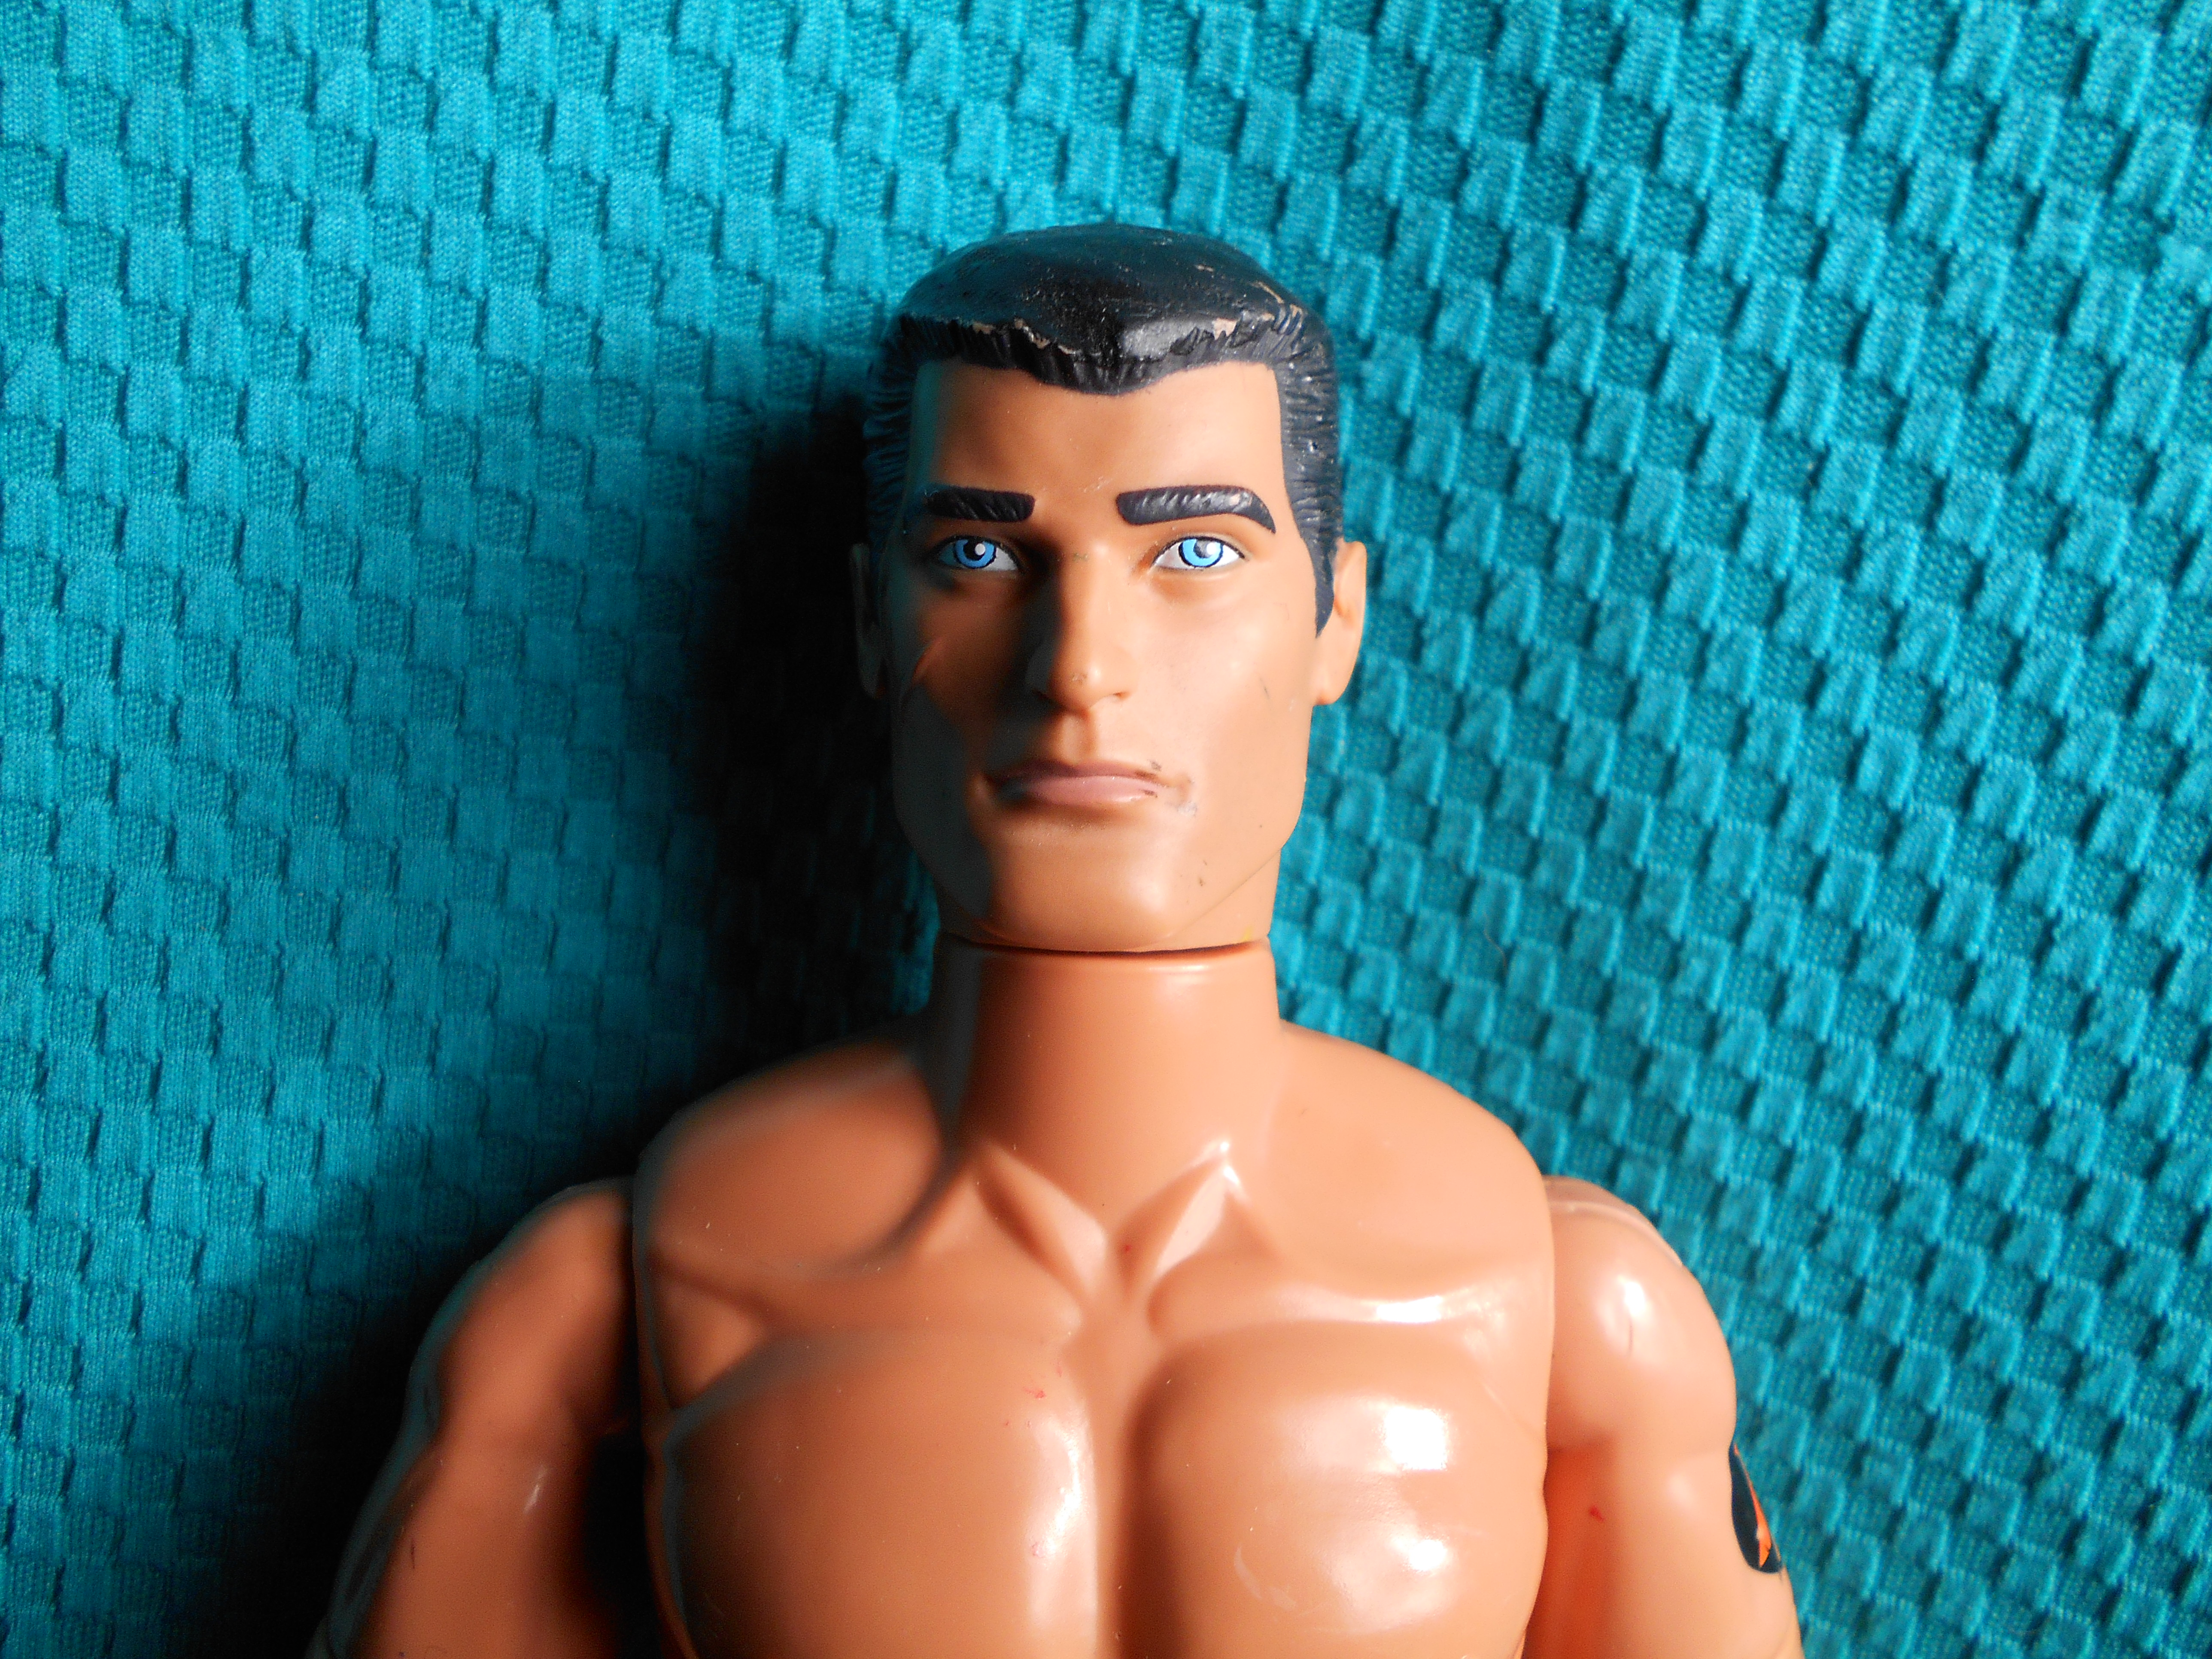 Hasbro Action man